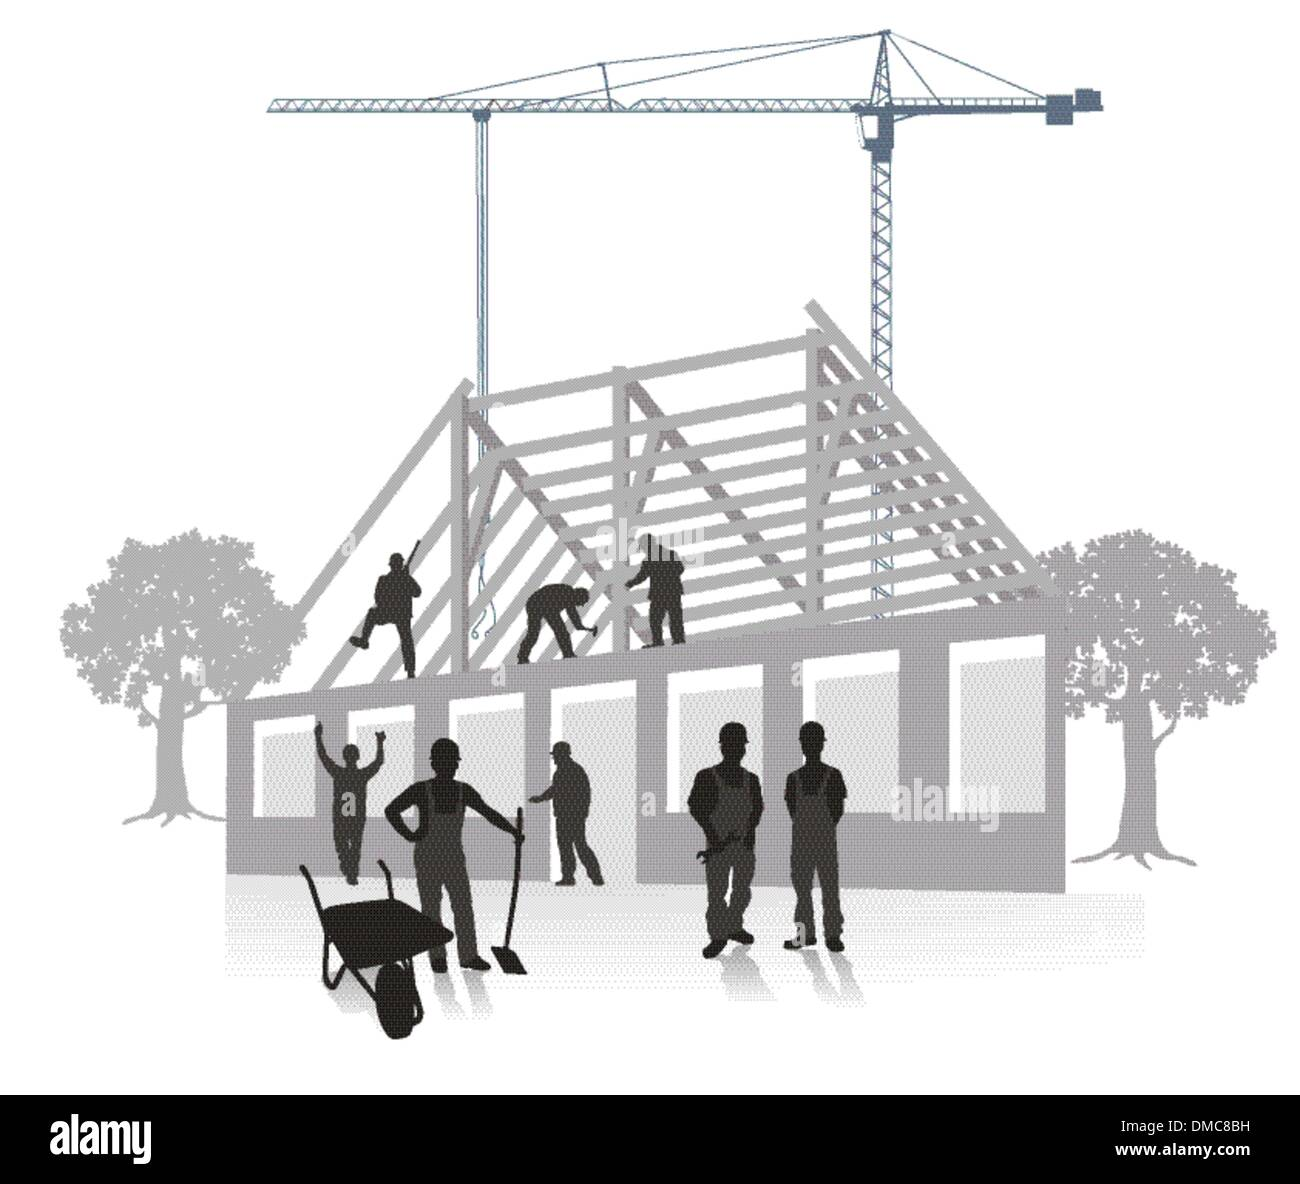 house building construction work - Stock Vector